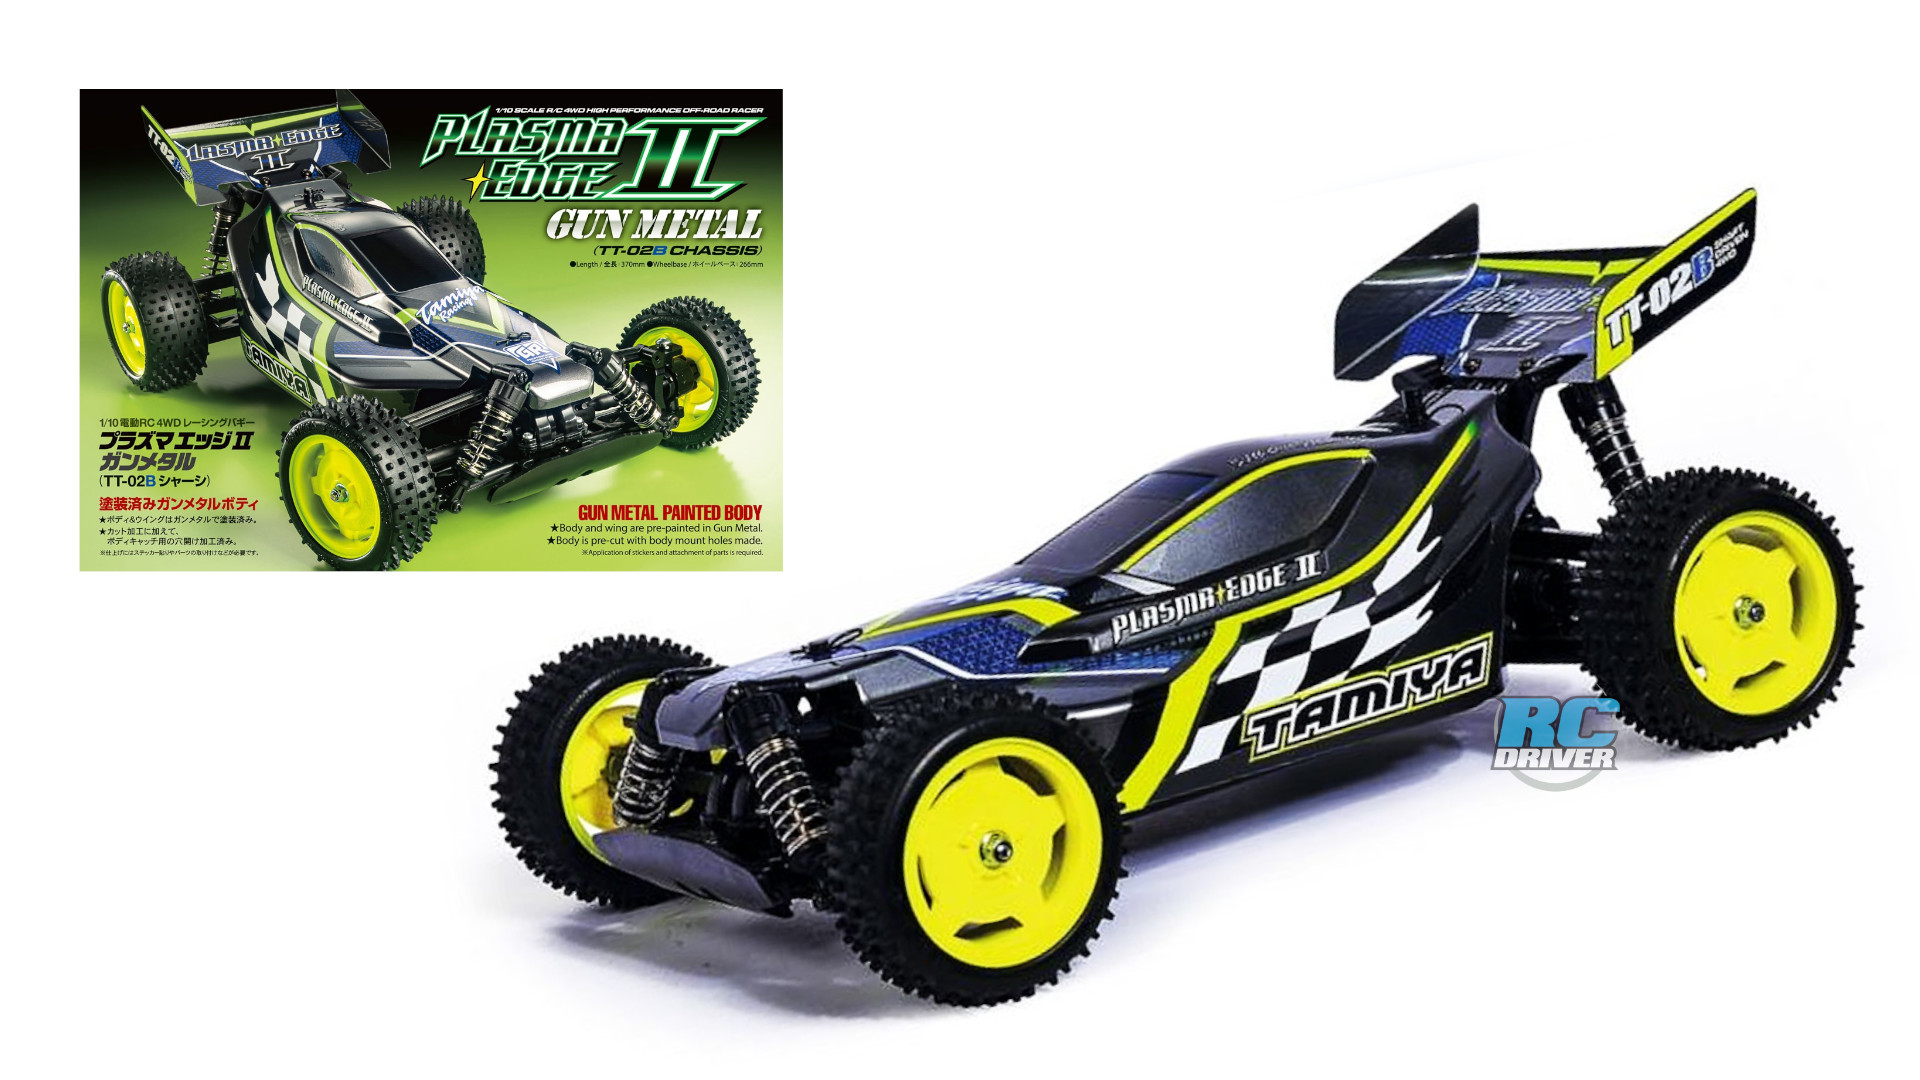 Tamiya Plasma Edge II is back